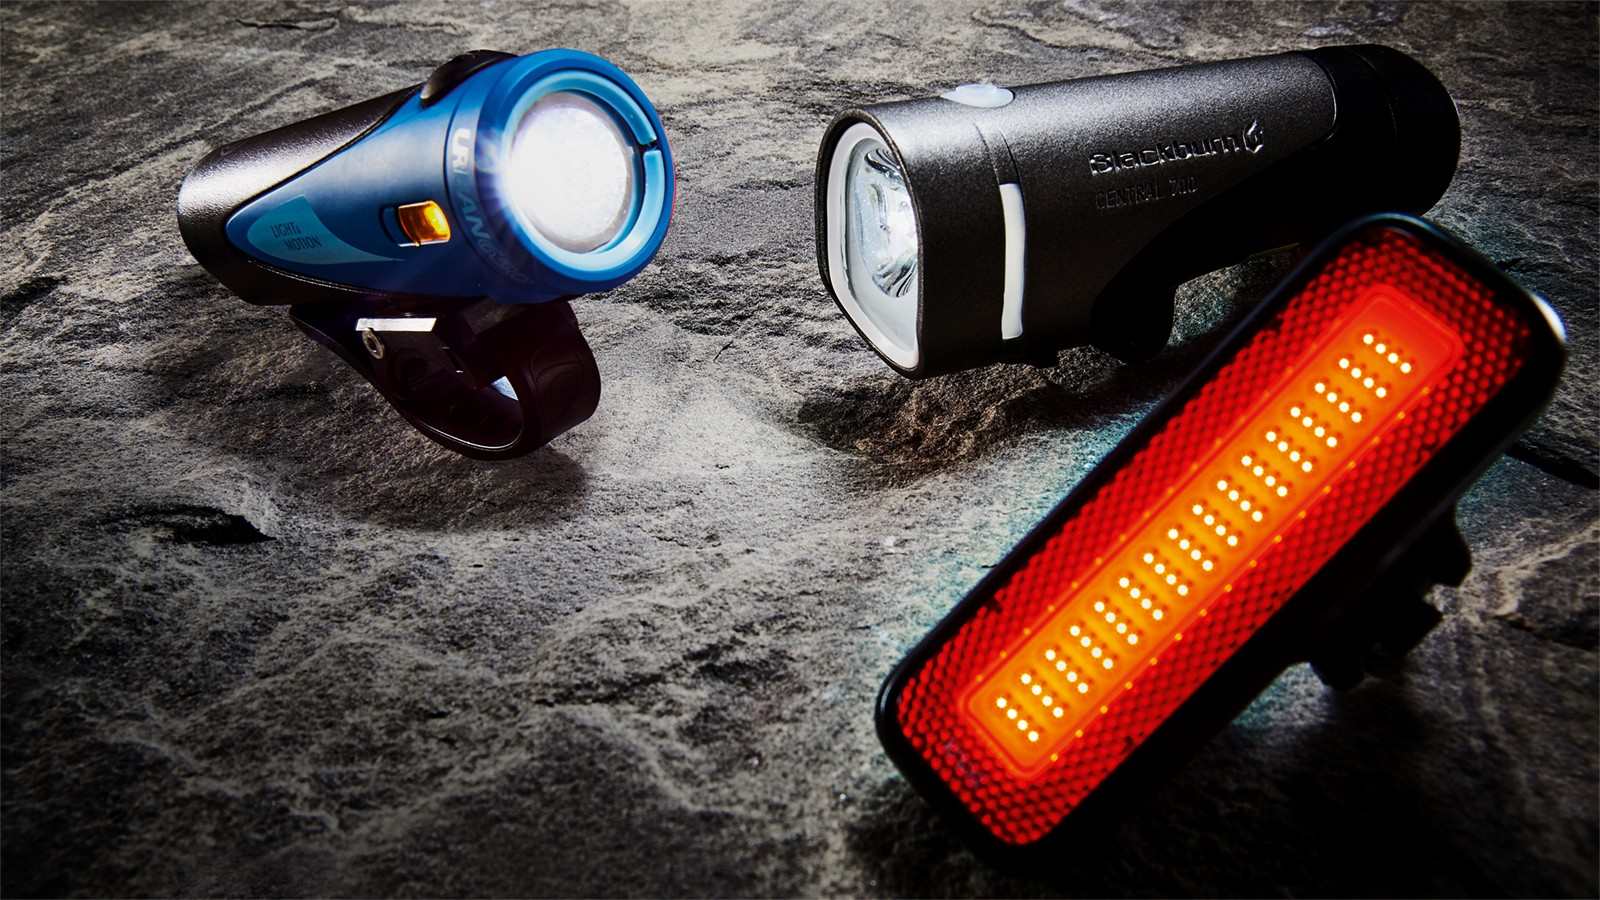 The minimum equipment for riding a bike at night in the UK includes a front light (white), a rear light (red), and reflectors